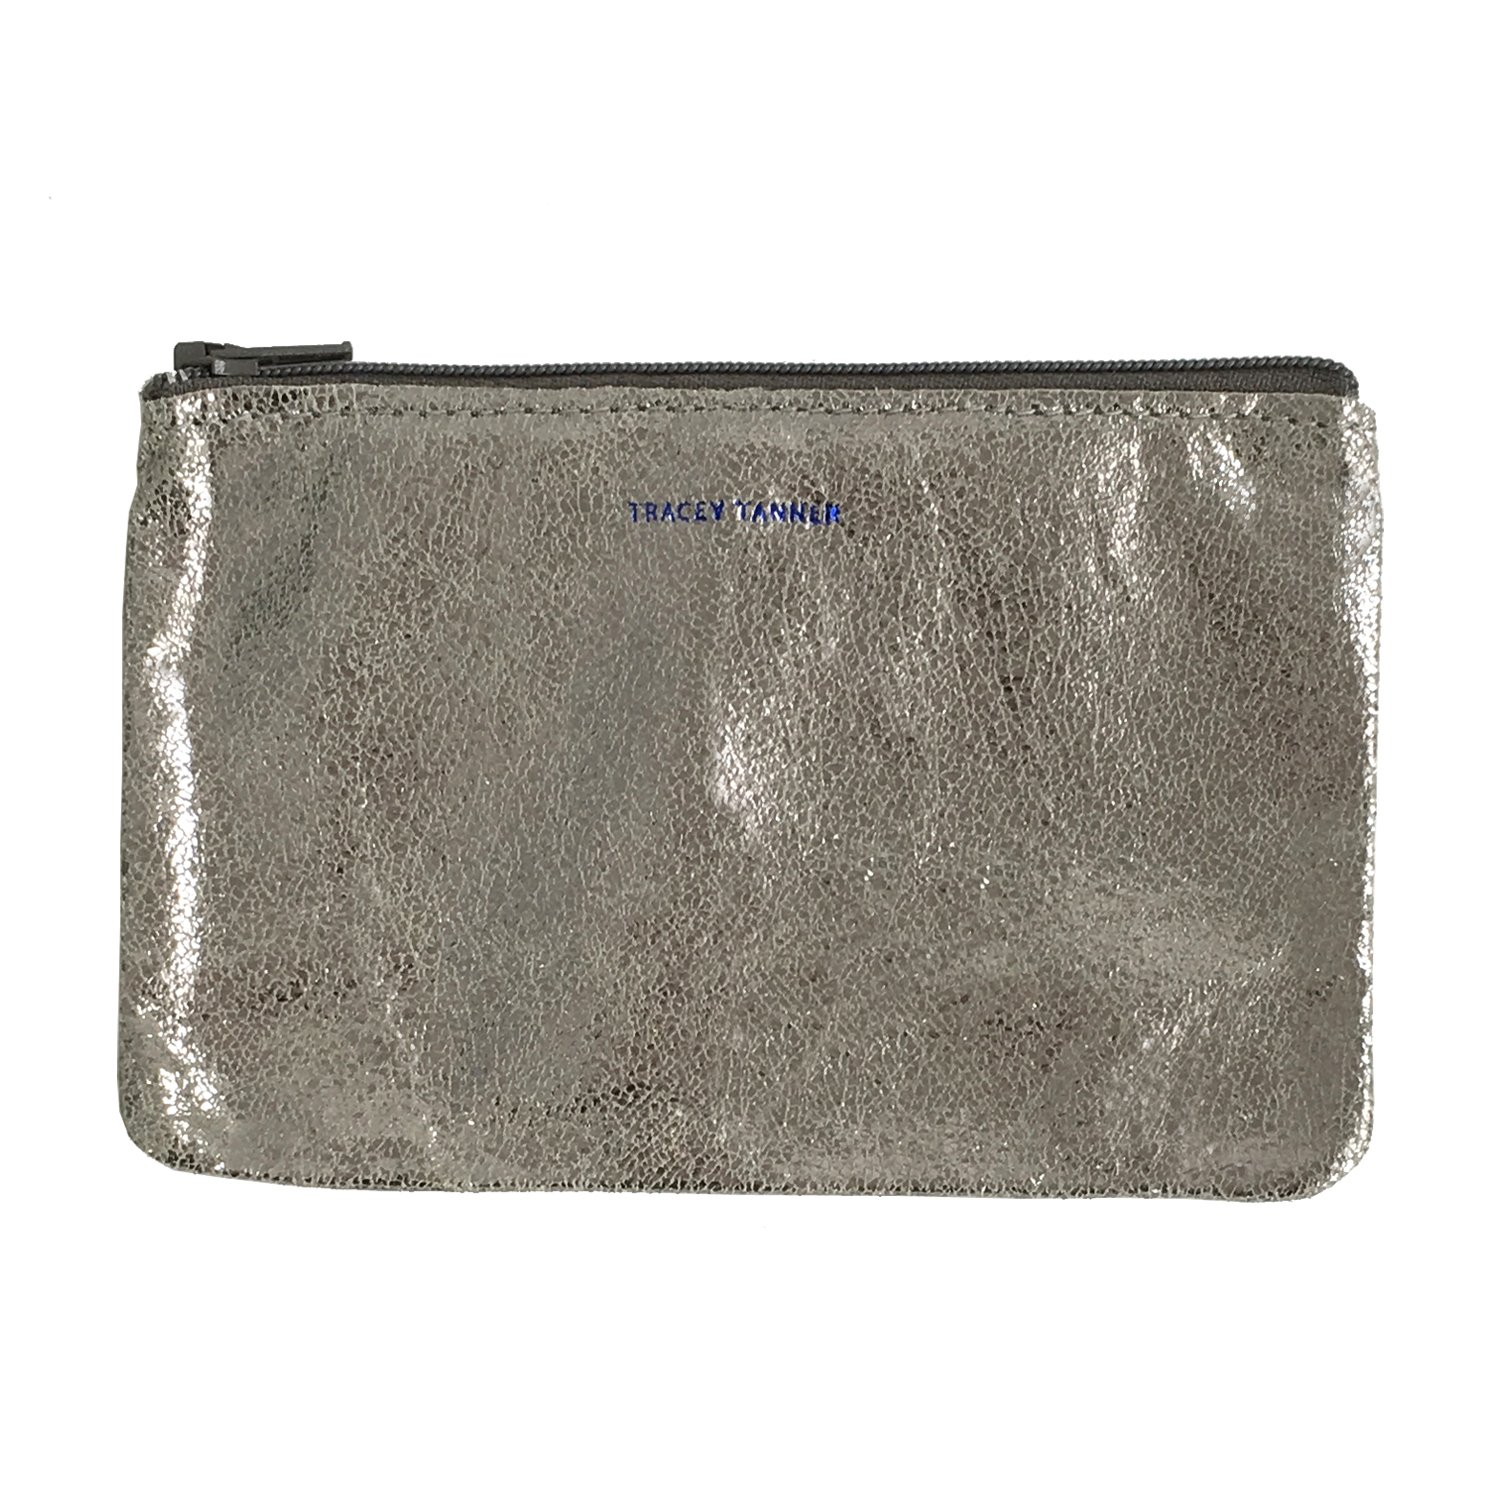 Tracey Tanner Zipper Top Pouch - Silver Sparkle